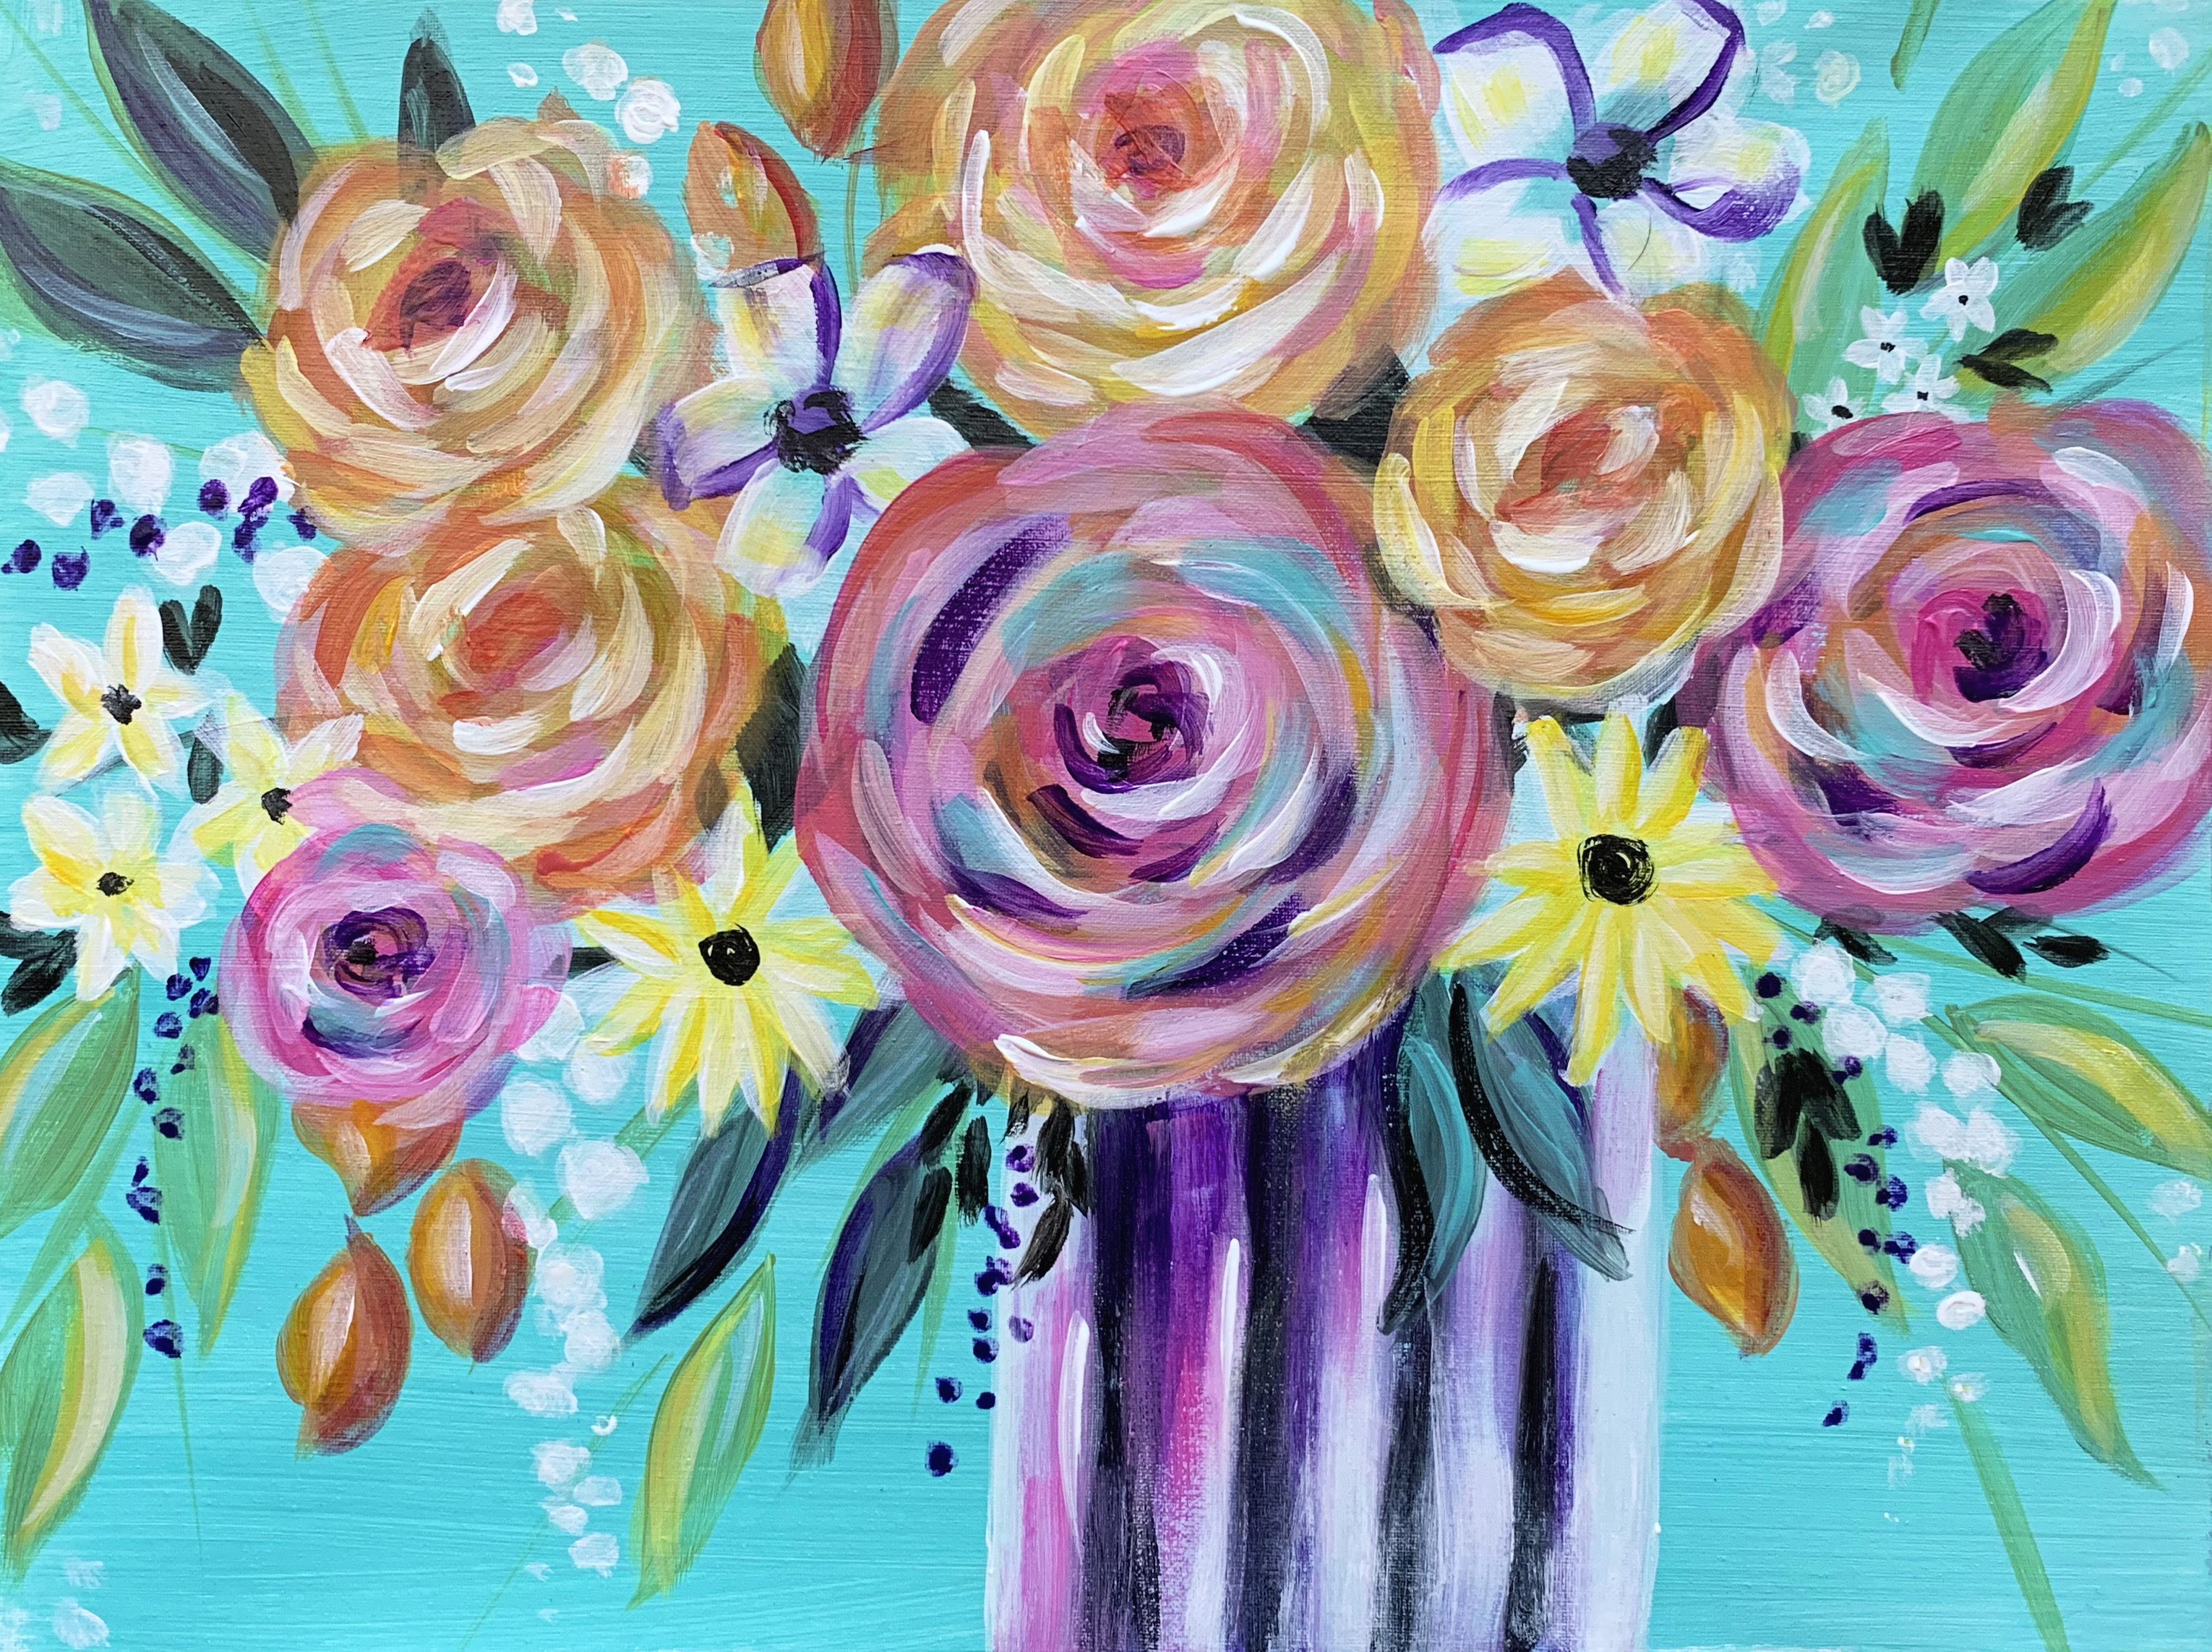 A Vibrant Spring Bouquet experience project by Yaymaker